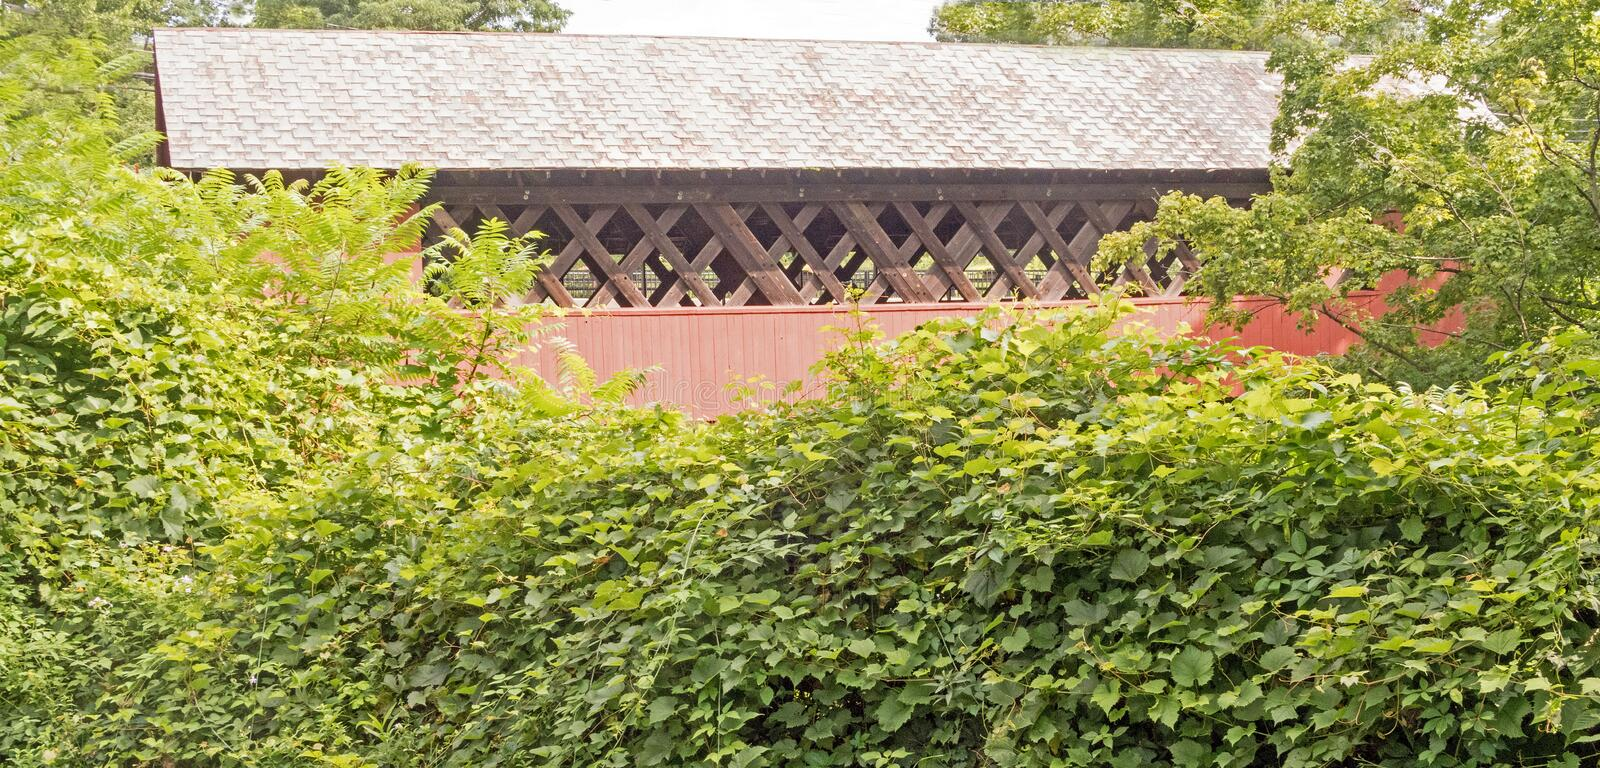 Creamery Covered Bridge. 1879 historic covered bridge West Brattleboro, Vermont, lattice truss, across Whetstone Brook hidden by vegetation royalty free stock photography